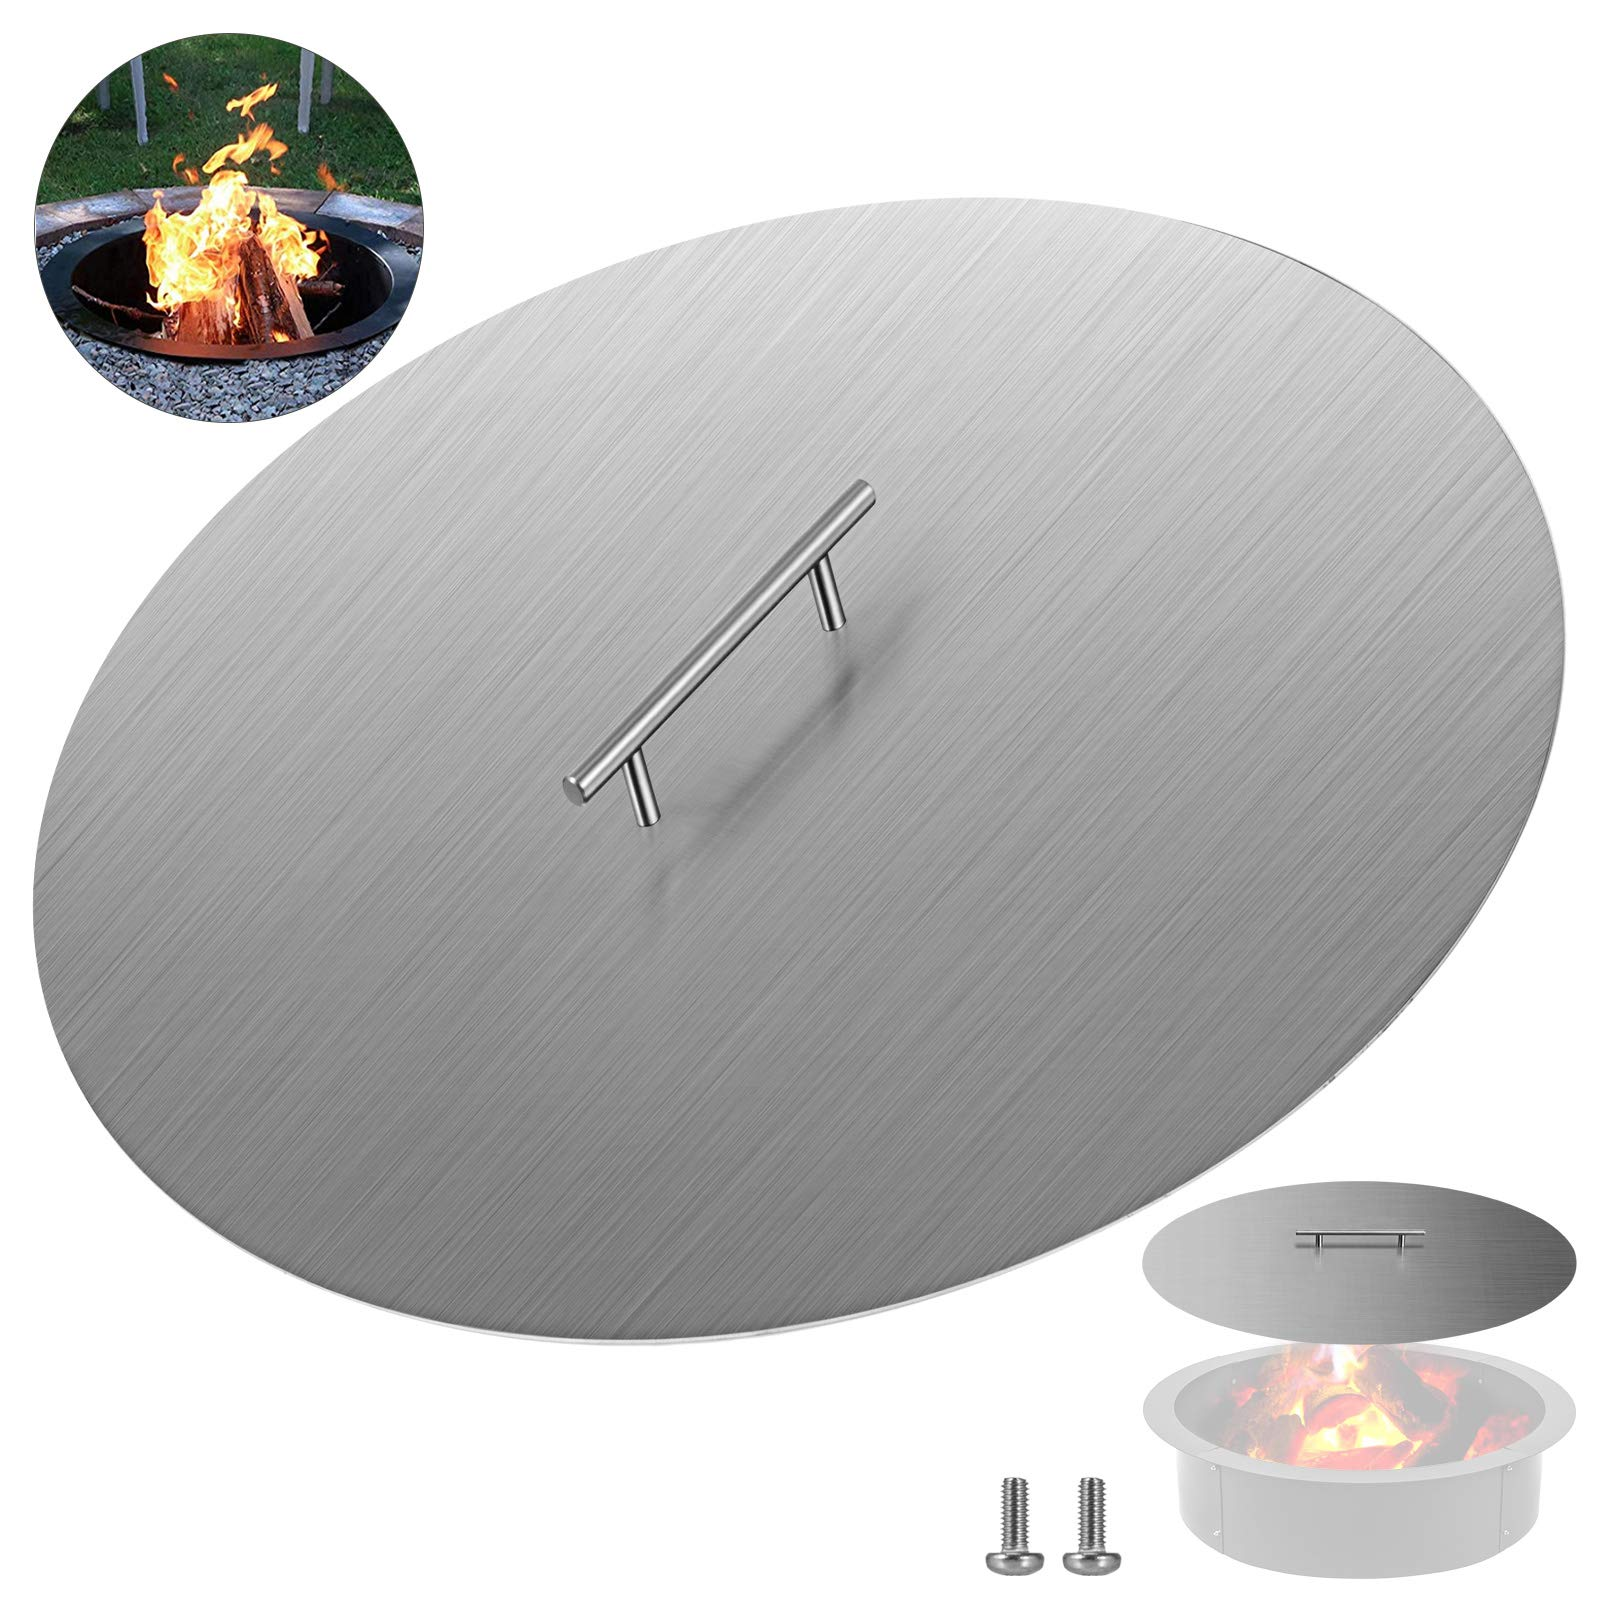 VBENLEM Fire Pit Lid 20 Inch Round Fire Ring Lid Cover 1.5mm Thick 304 Stainless Steel Burner Pan Cover for Patio Fire Pit Pan by VBENLEM